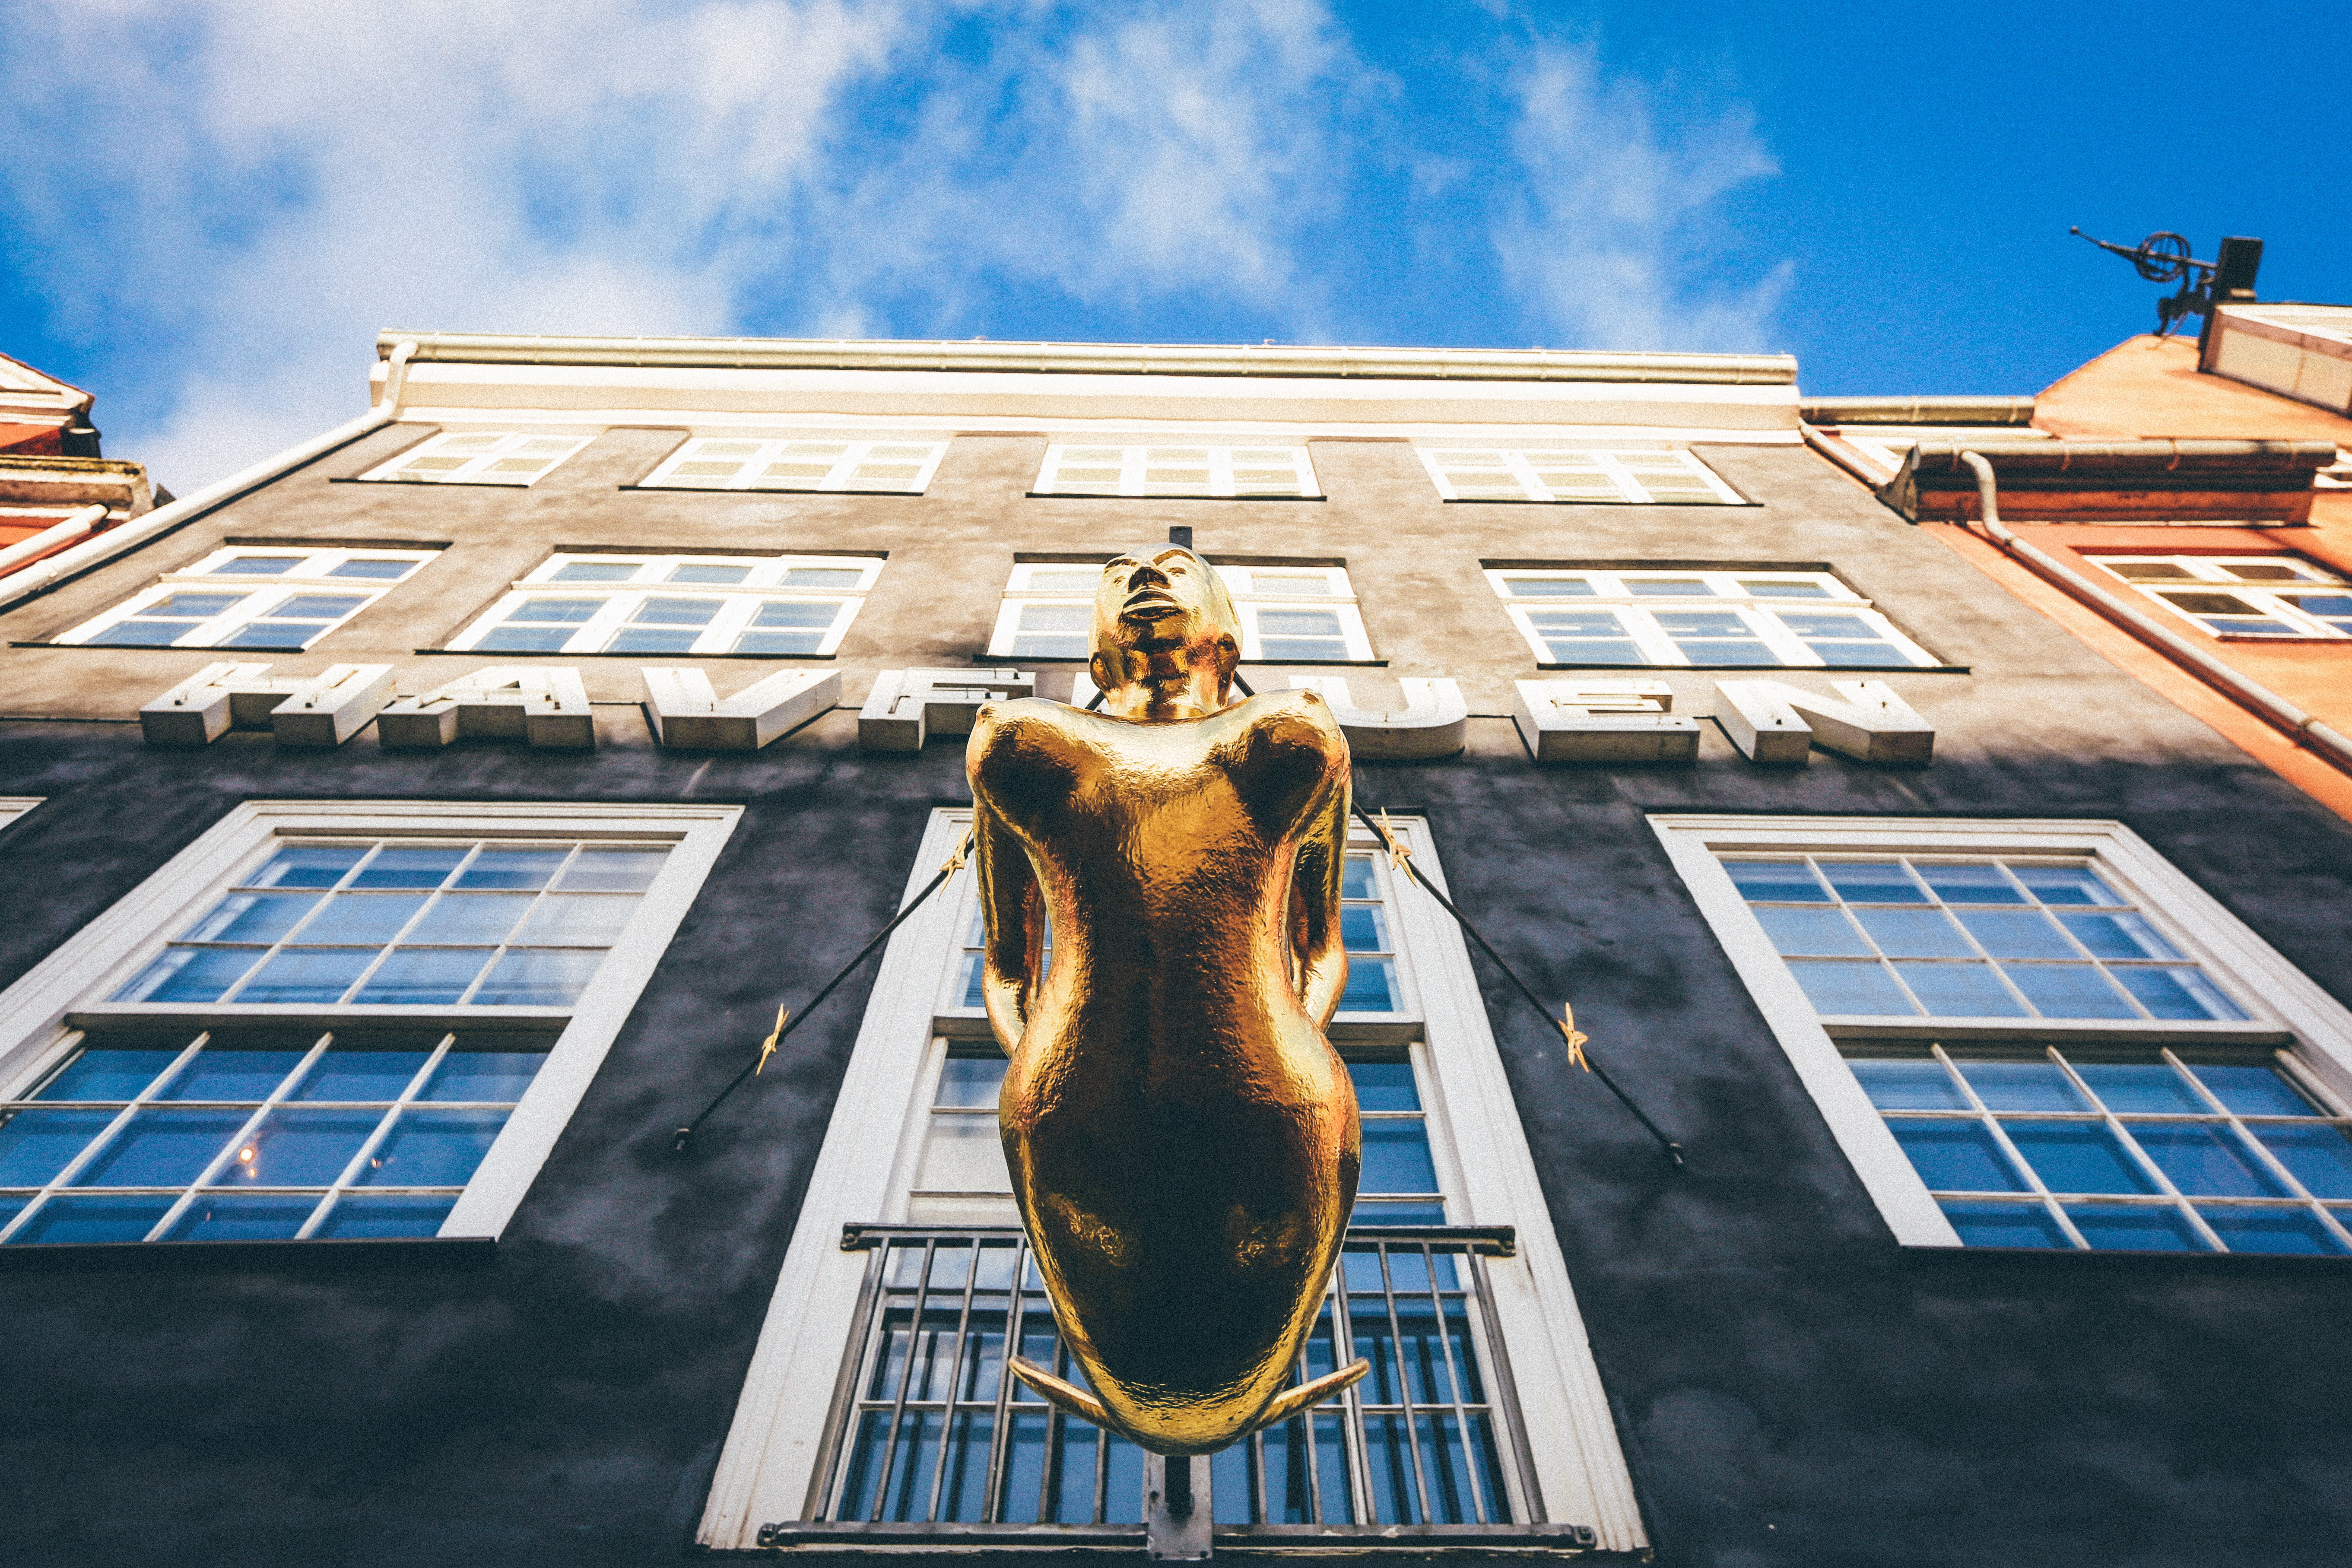 low angle photography of brown woman statue in front of building under white and blue building